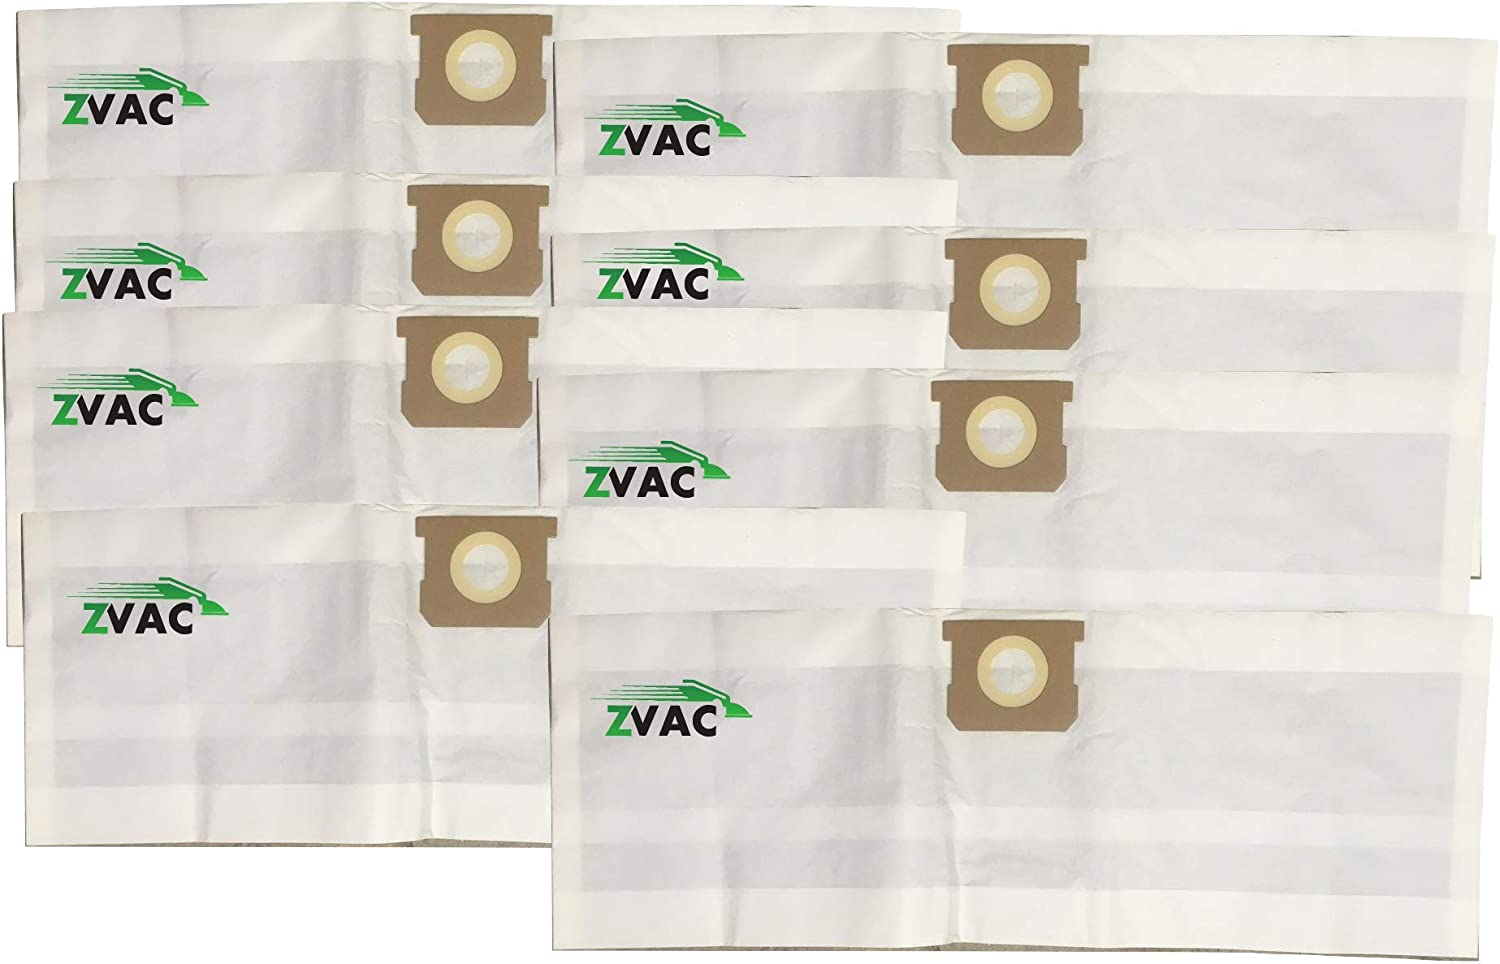 ZVac 8 Pack Compatible Shop Vac Bags 5-8 Gallon Replacement Bags Type H & Type E Shop-Vac Bags. Compare These Generic Bags to OEM 9067100 + 90671 + 9066100 + 90661